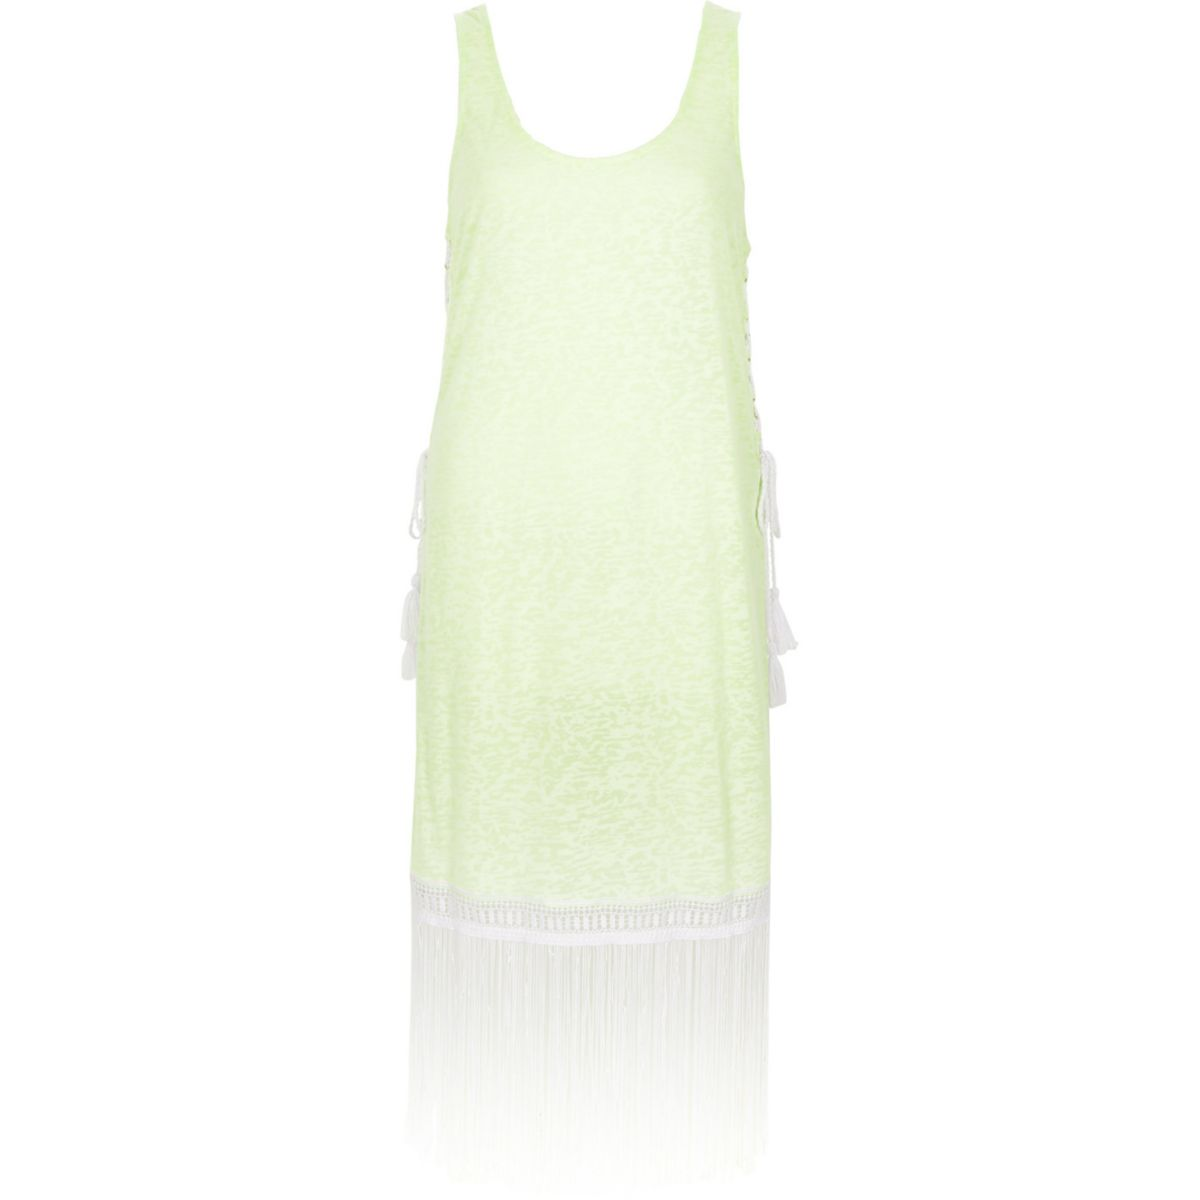 Neon yellow burnout fringe trim vest dress